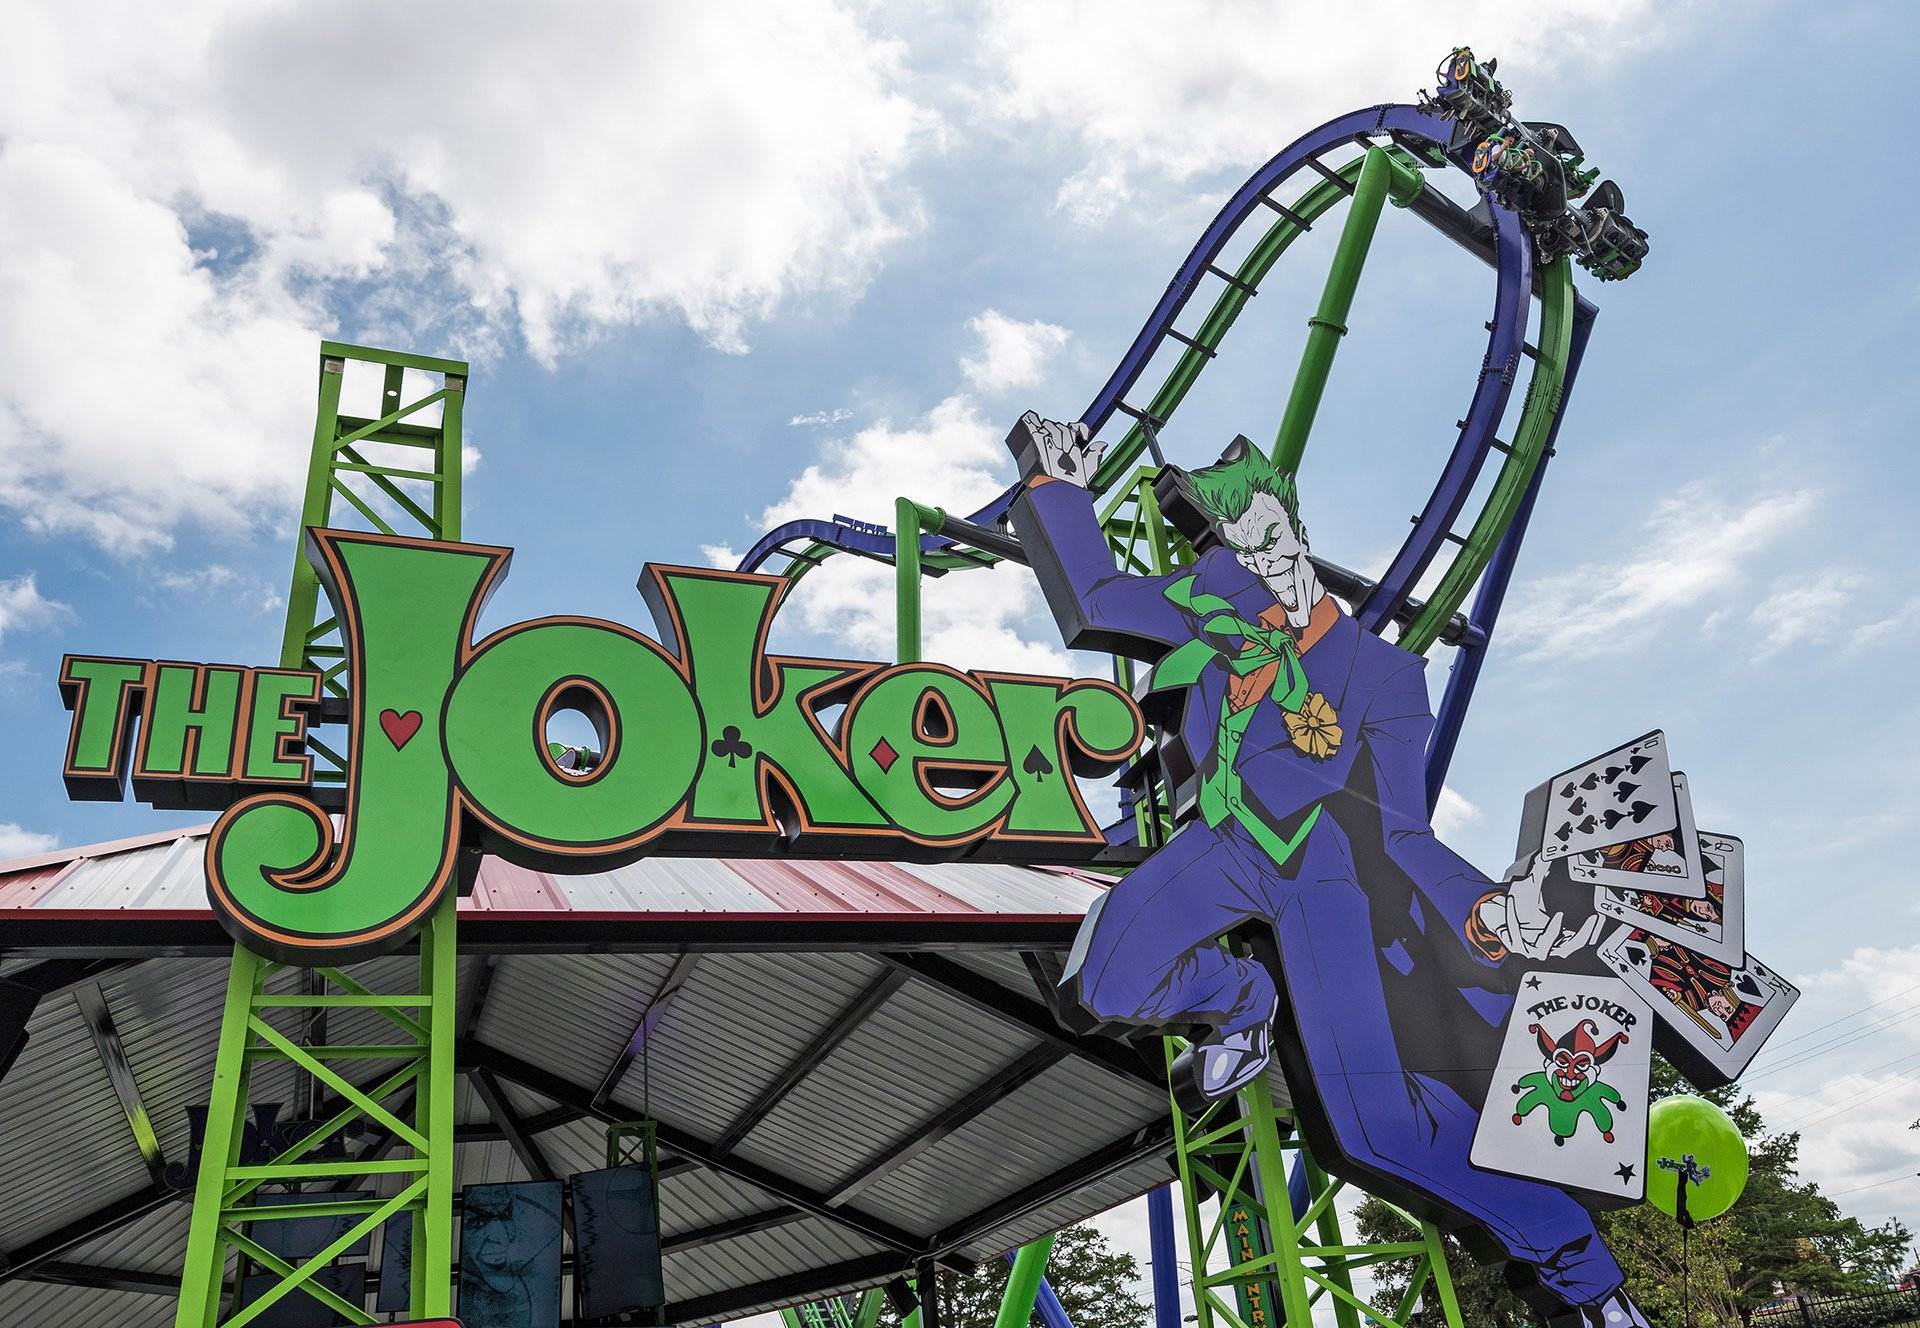 In the slide show above, you'ver viewing pictures of Six Flags Over Texas in the Dallas-Ft. Worth suburb of Arlington. You'll surely enjoy the selection of Six Flags Over Texas rides and attractionsthere's something fun for every age from toddlers to teens and parents & grandparents, too!